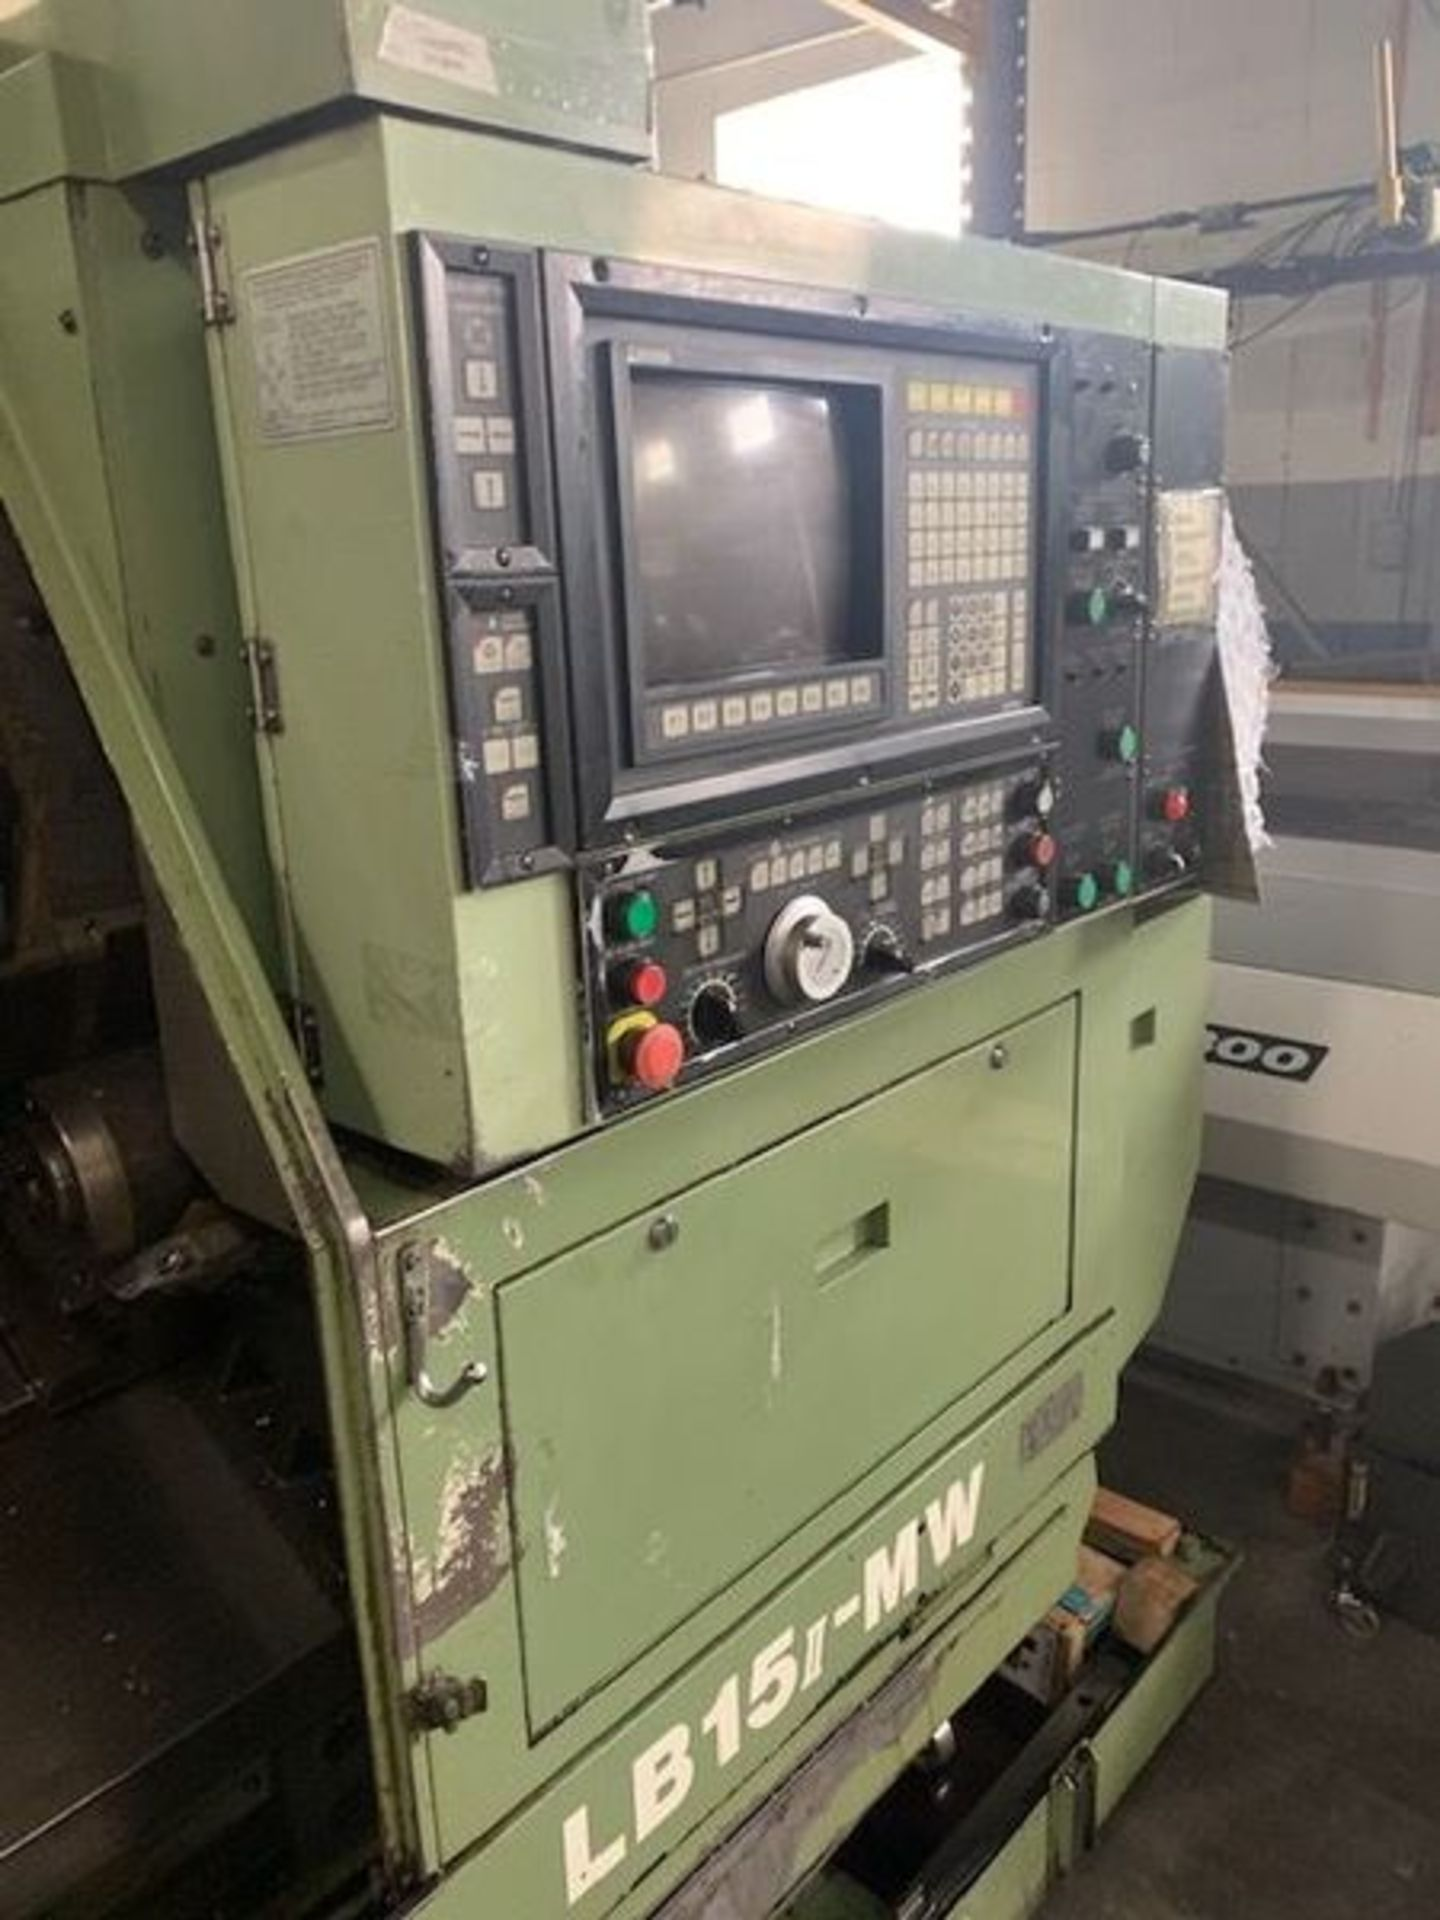 """Lot 3H - OKUMA LB-15II-MW CNC TURNING CENTER, X-AXIS TRAVEL: 5.91"""", Z-AXIS TRAVEL: 20.47"""", SWING OVER BED: 15"""